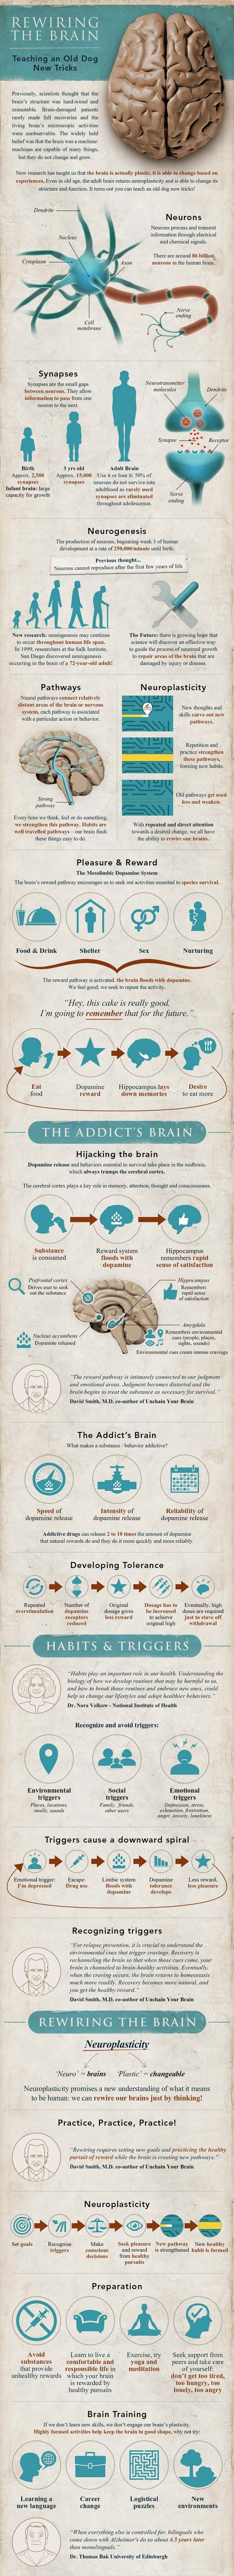 This Nifty Infographic is a Great Introduction to Neuroplasticity and Cognitive Therapy ~ ~ Did you know you can rewire your brain? Neuroscientific breakthroughs are revealing fascinating new truths about how we can control our brains to create a... Part One